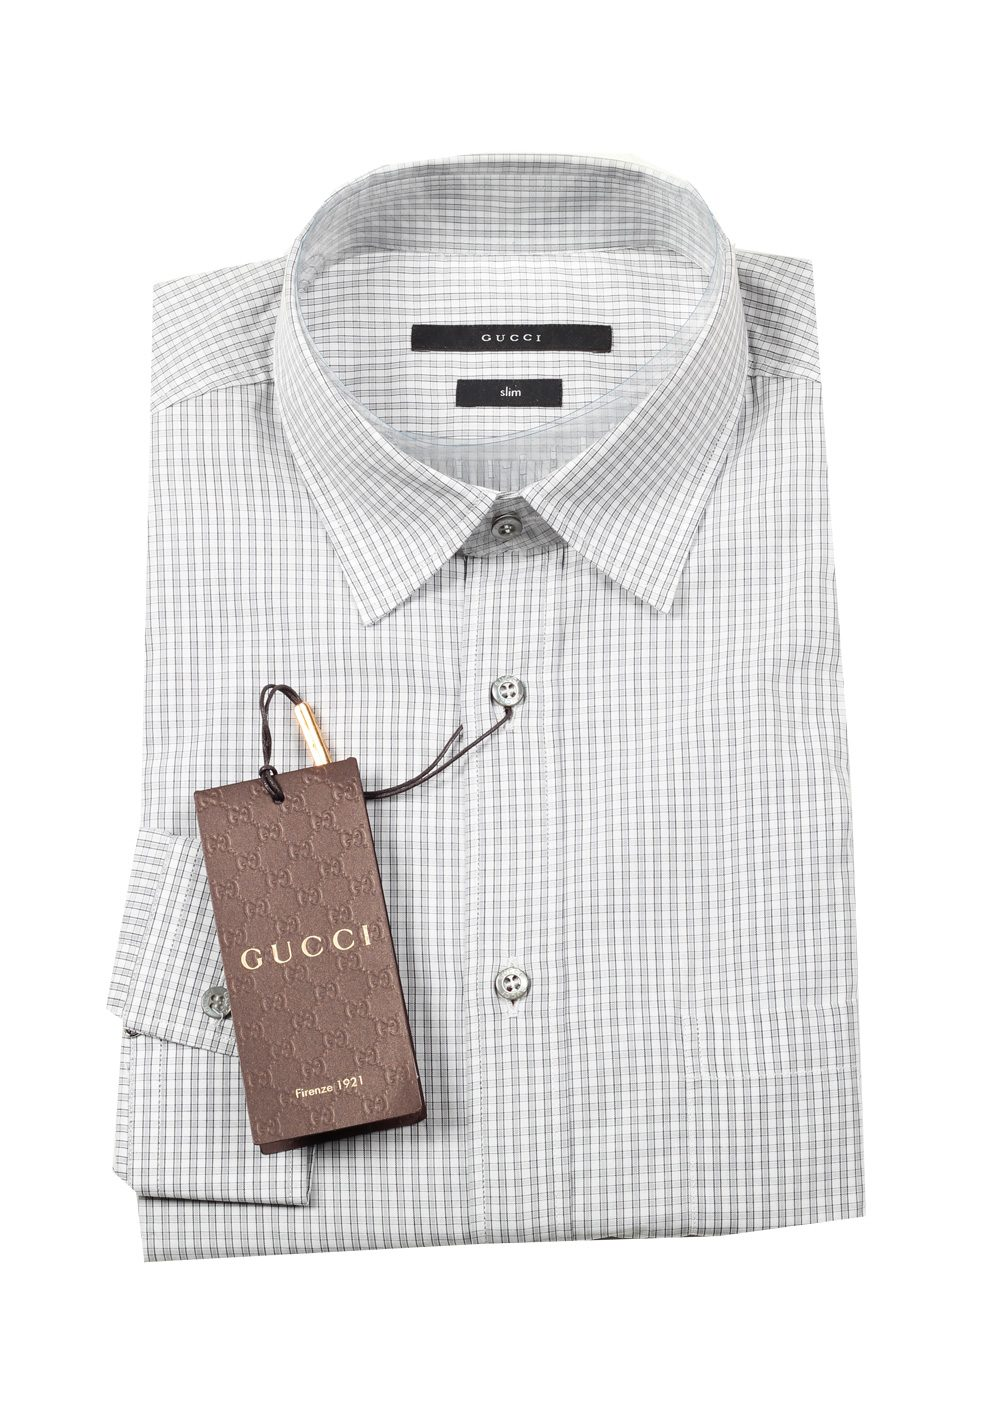 Gucci checked gray dress shirt size 40 15 75 u s slim for Size 15 dress shirt